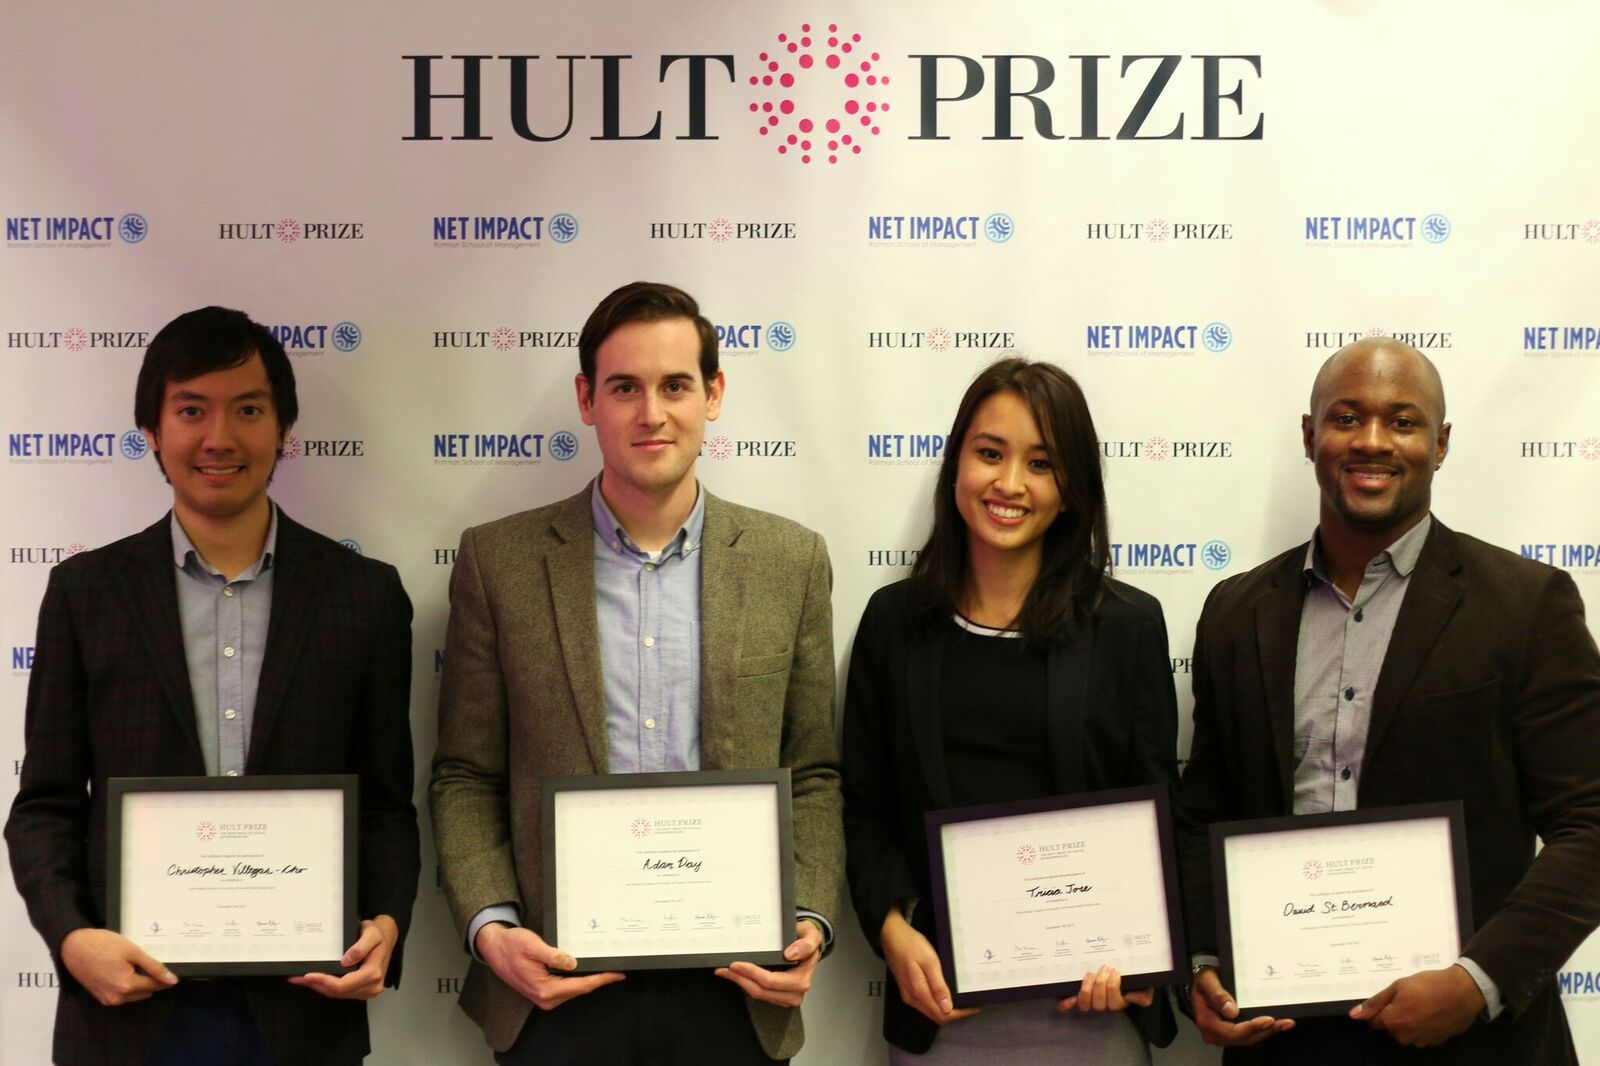 Hult Prize team members from the Rotman School